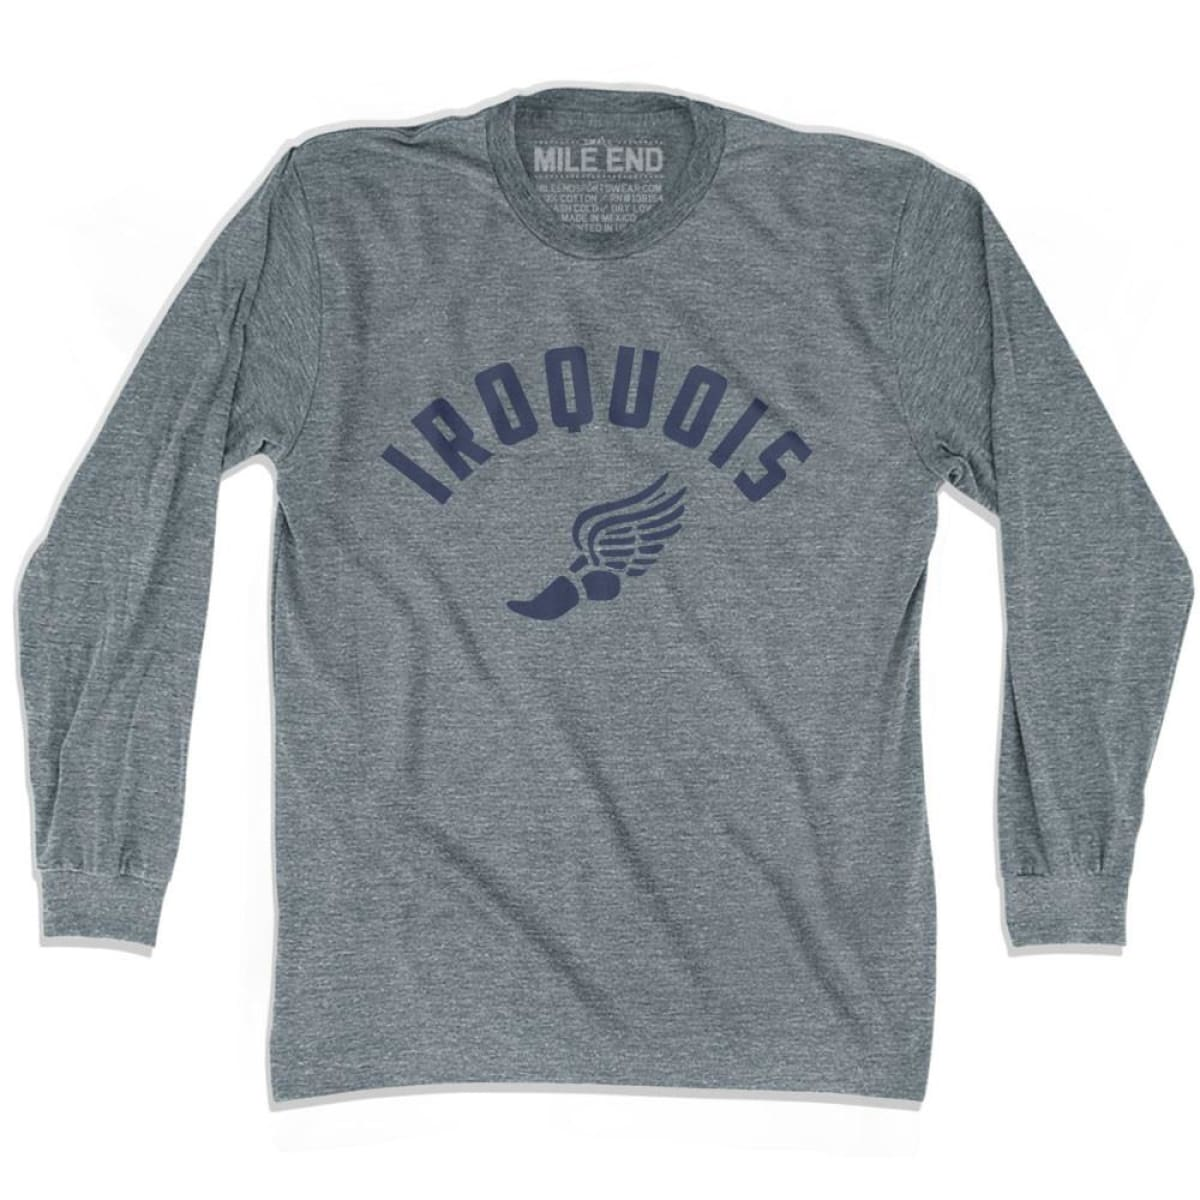 Iroquois Track Long Sleeve T-shirt - Athletic Grey / Adult X-Small - Mile End Track